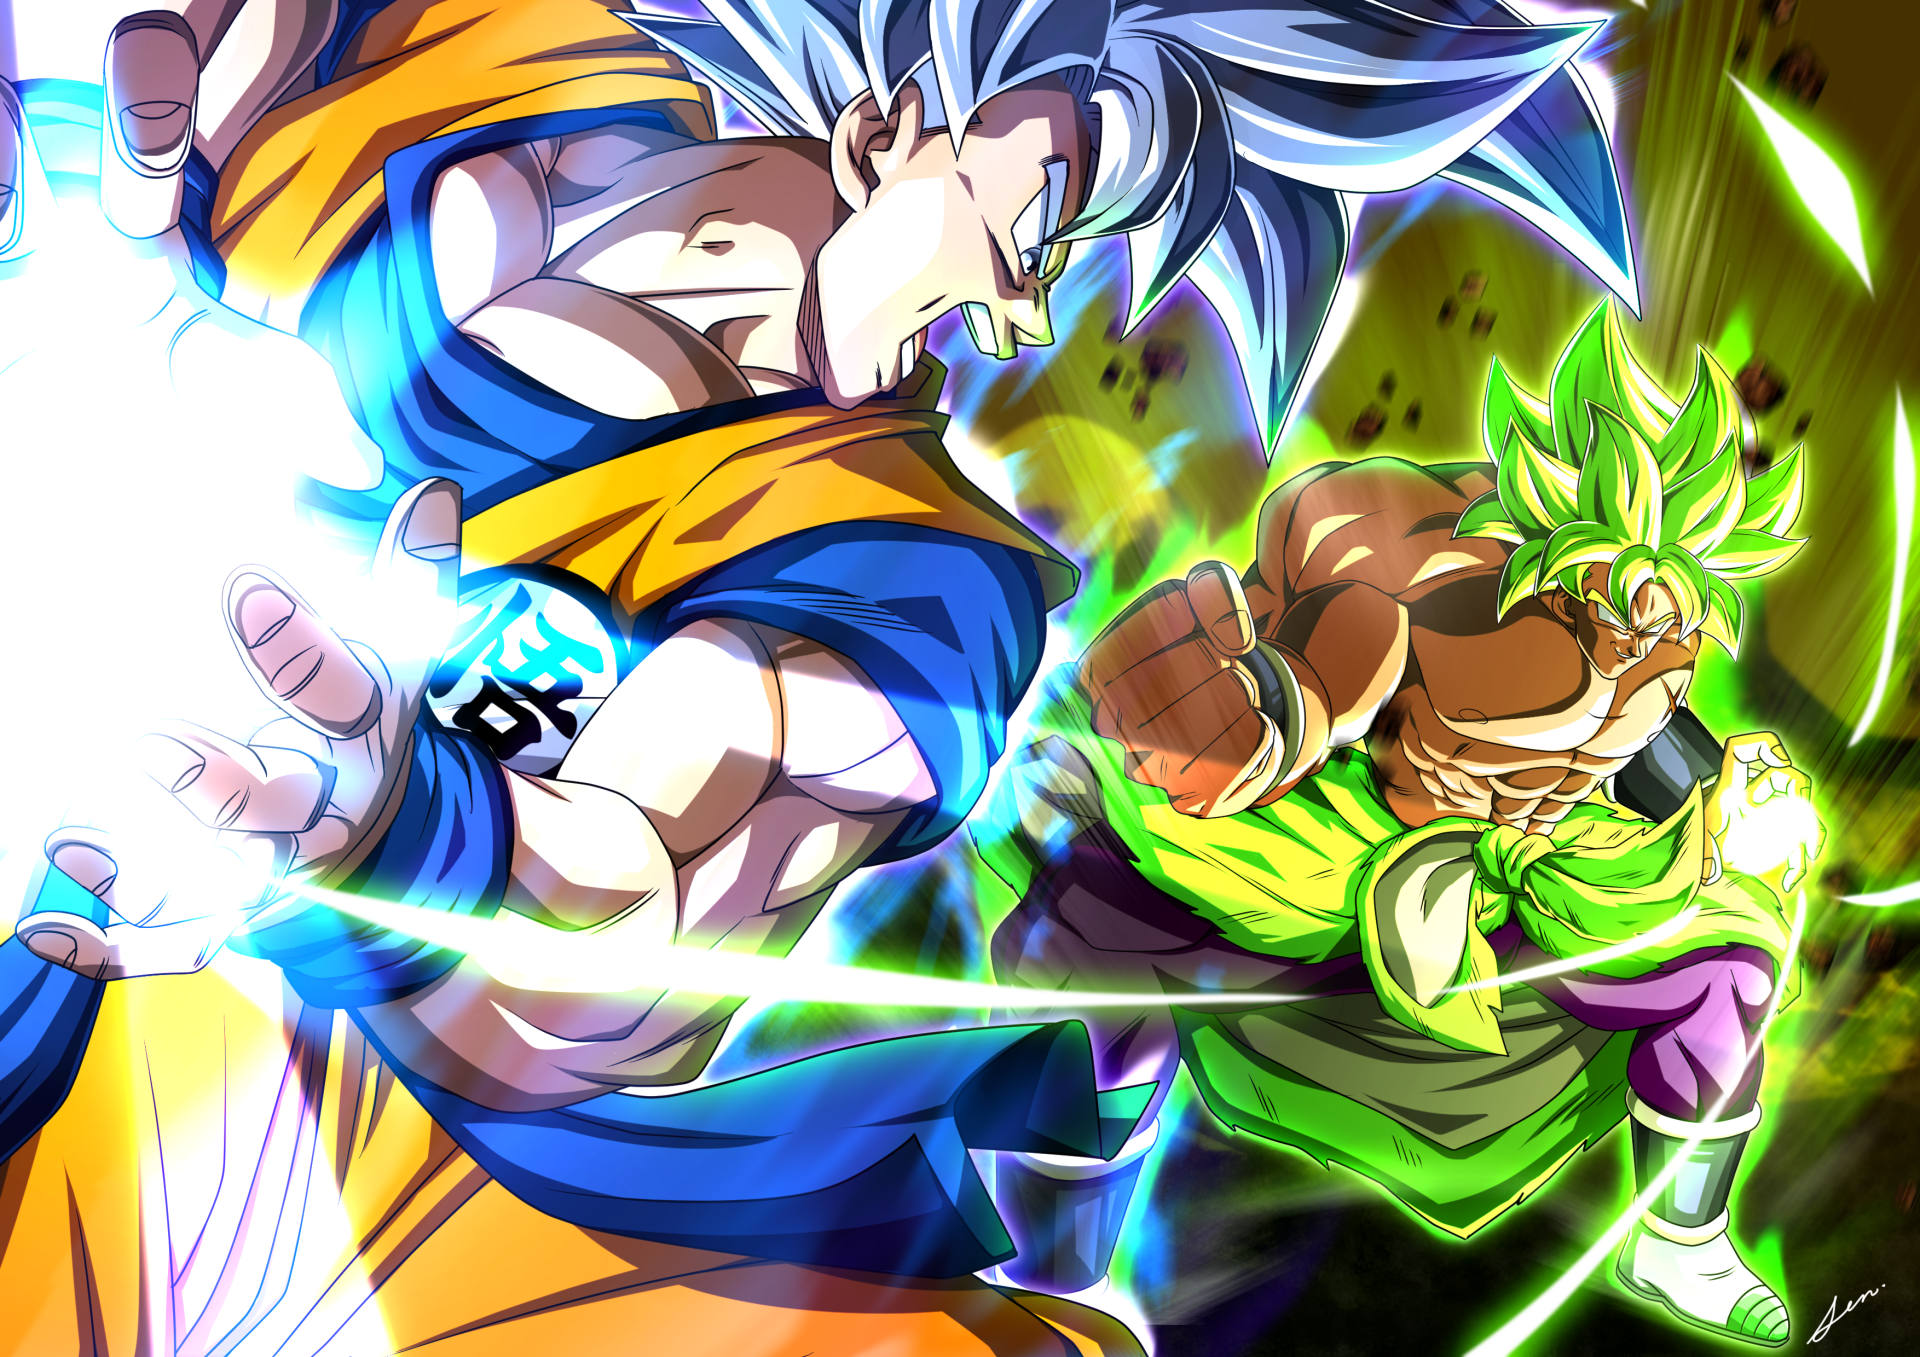 Goku Vs Broly Wallpapers Top Free Goku Vs Broly Backgrounds Wallpaperaccess